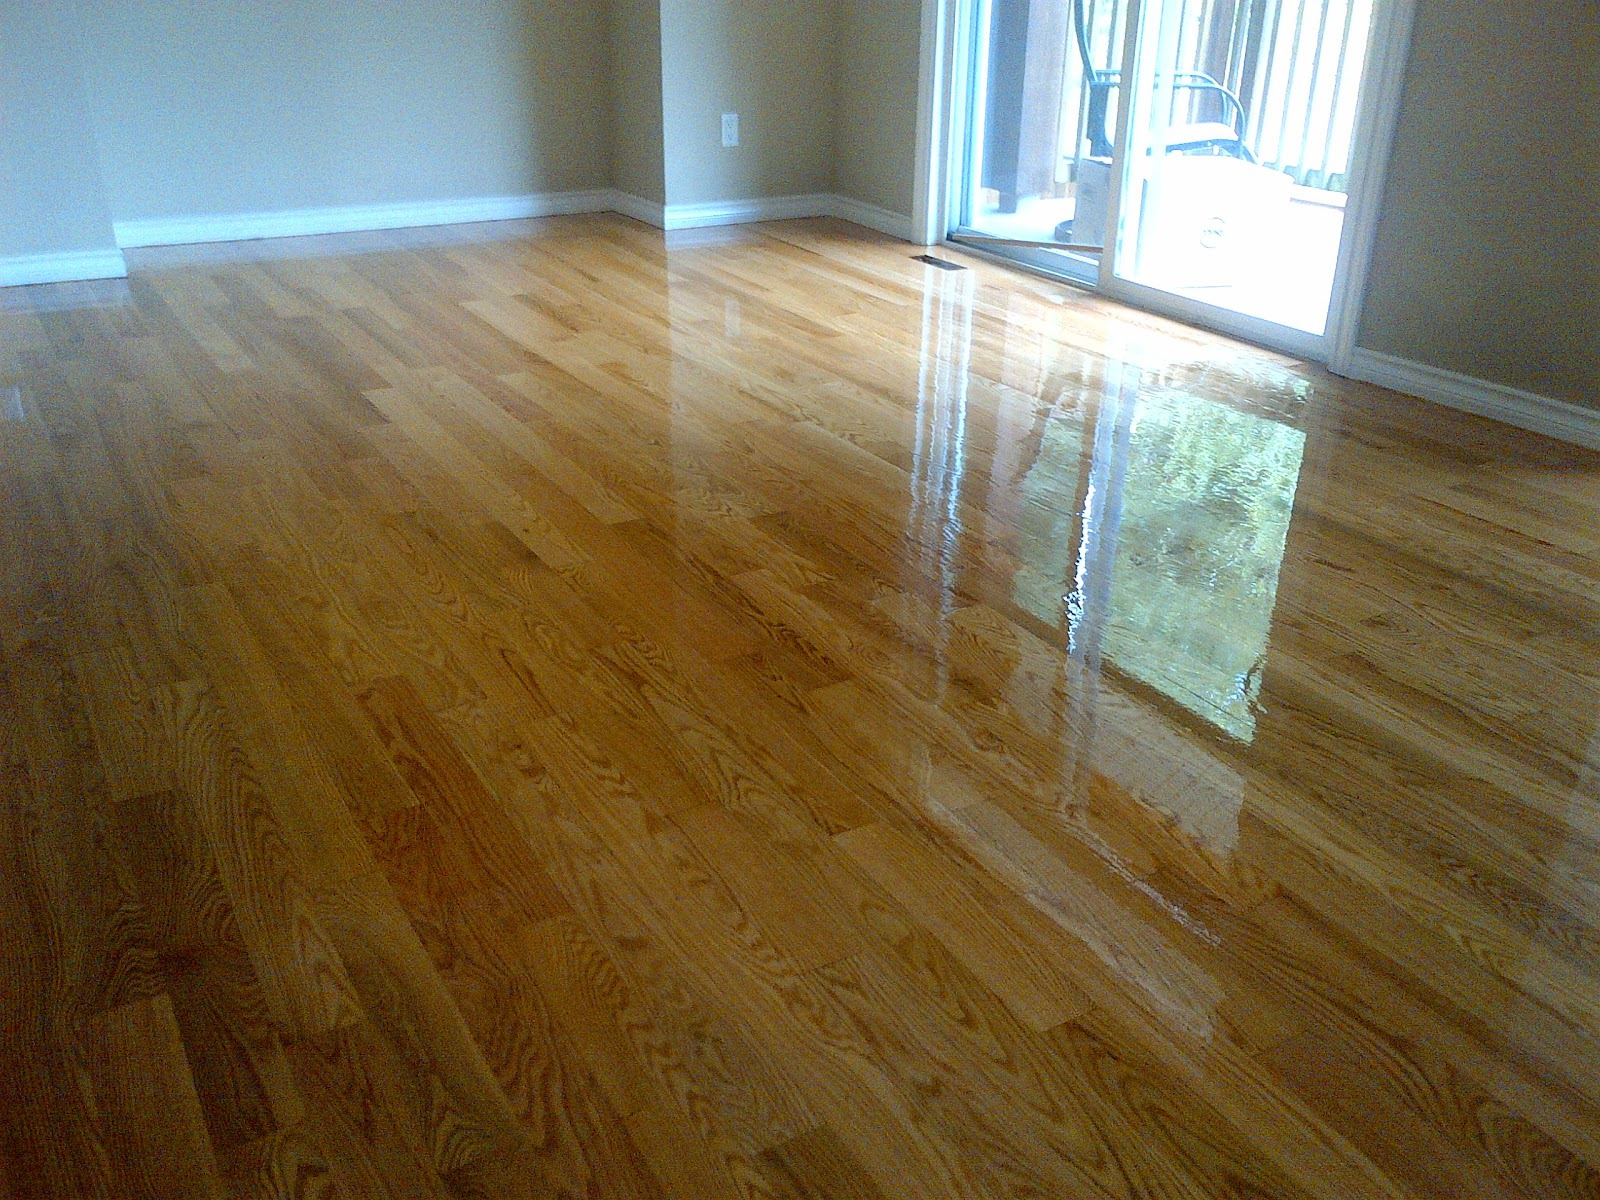 Ahf all hardwood floor refinishing vancouver bc by ken moersch for Hardwood floors vancouver